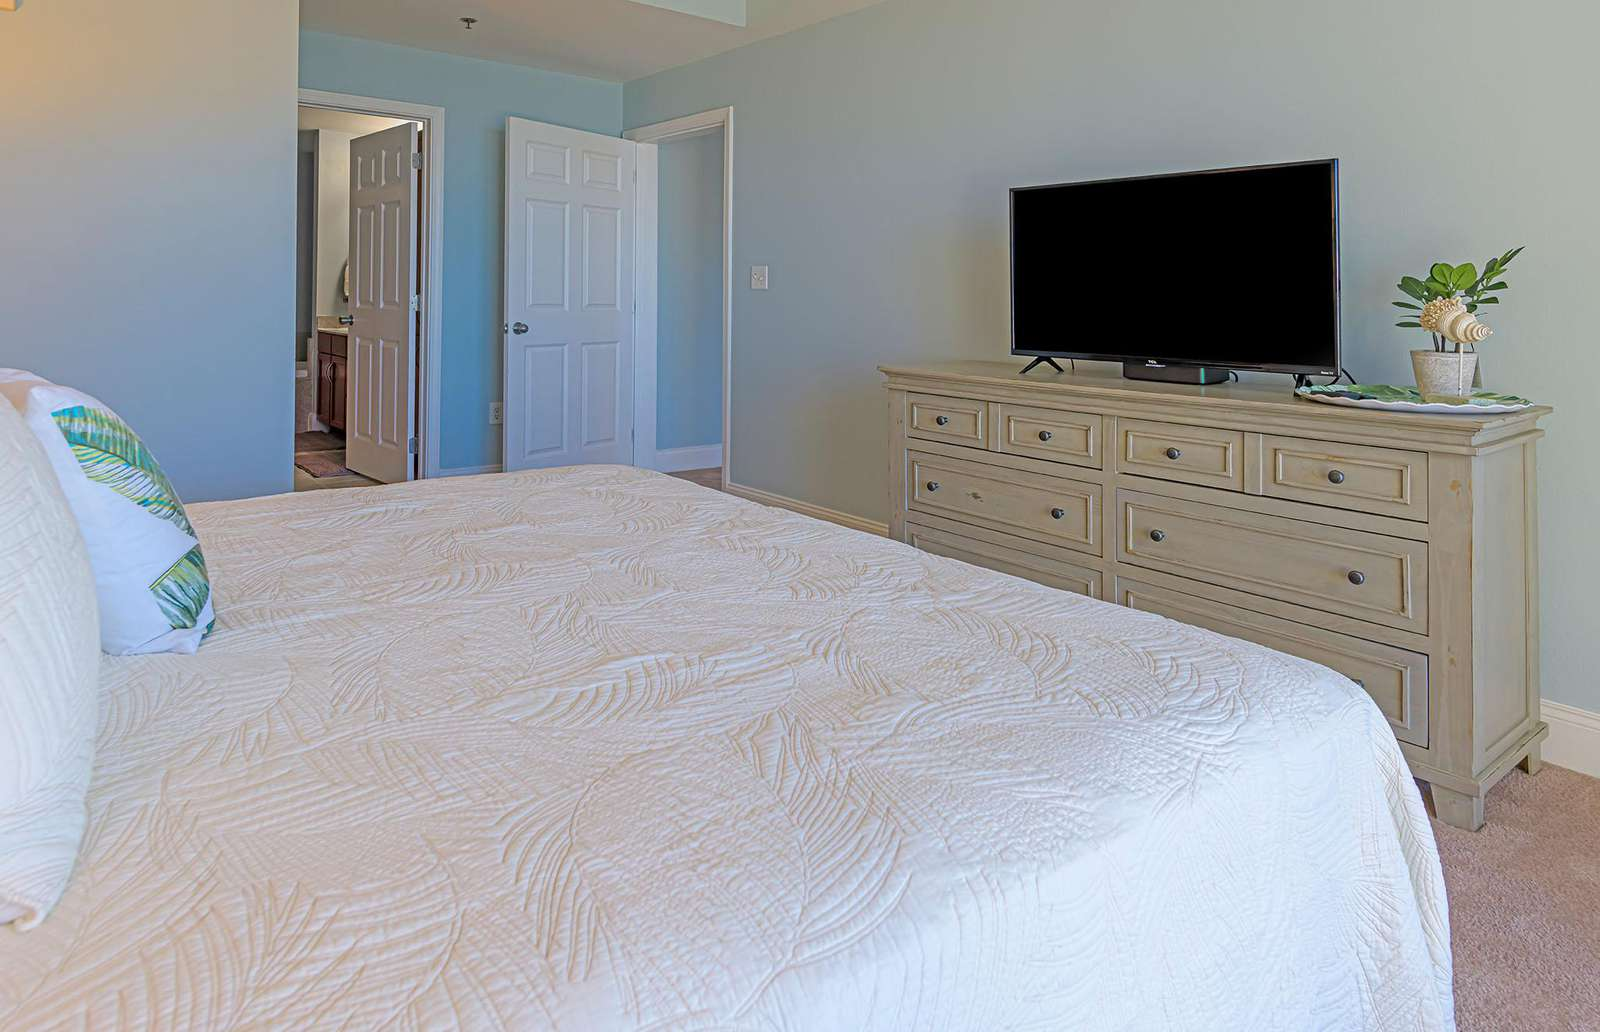 Cable TV and smart capabilities in both bedrooms!